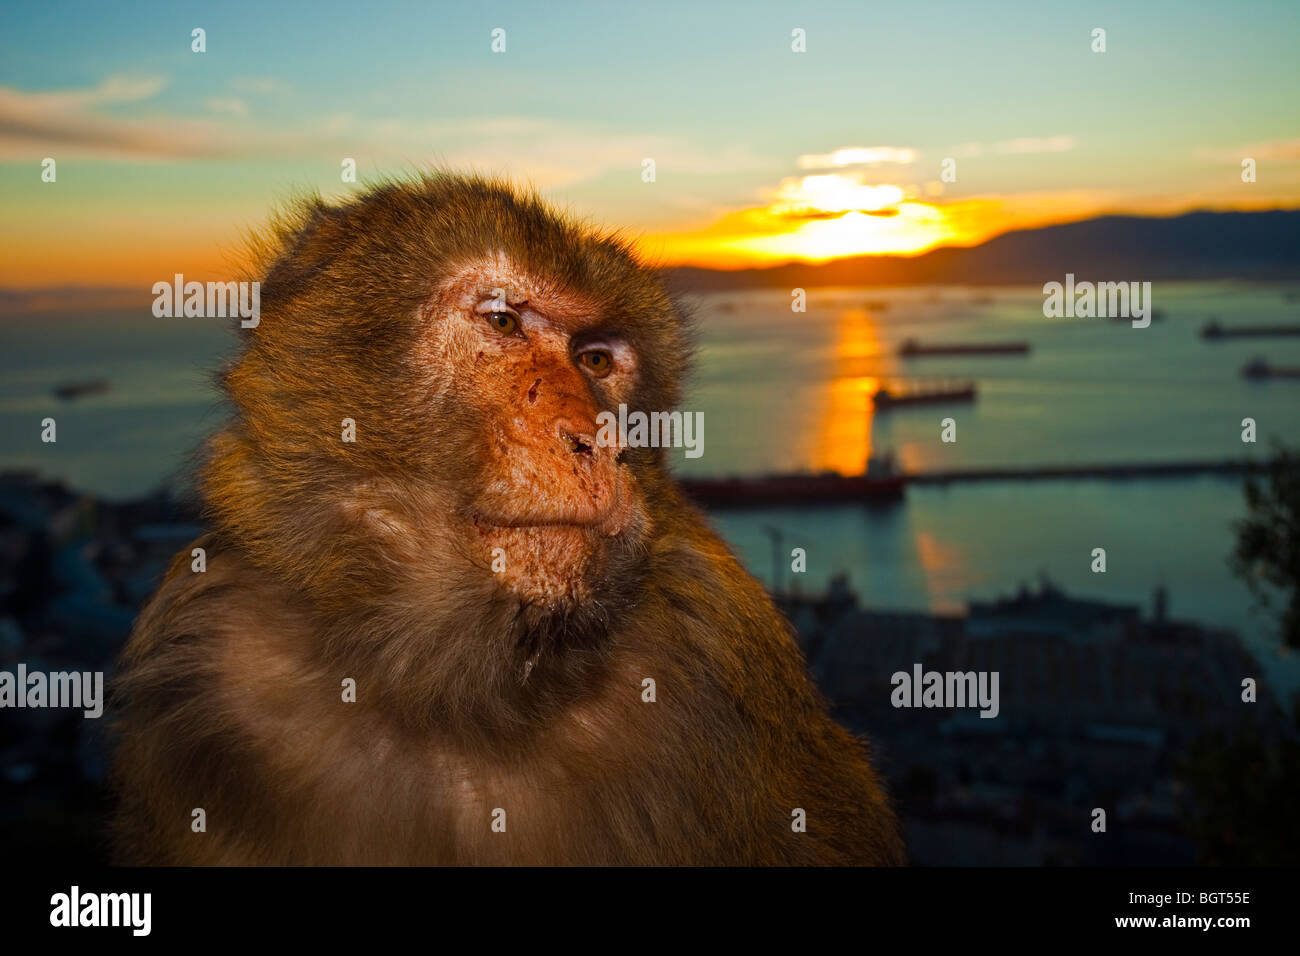 Singe de Barbarie (Macaca sylvanus), rocher de Gibraltar, Royaume-Uni Photo Stock